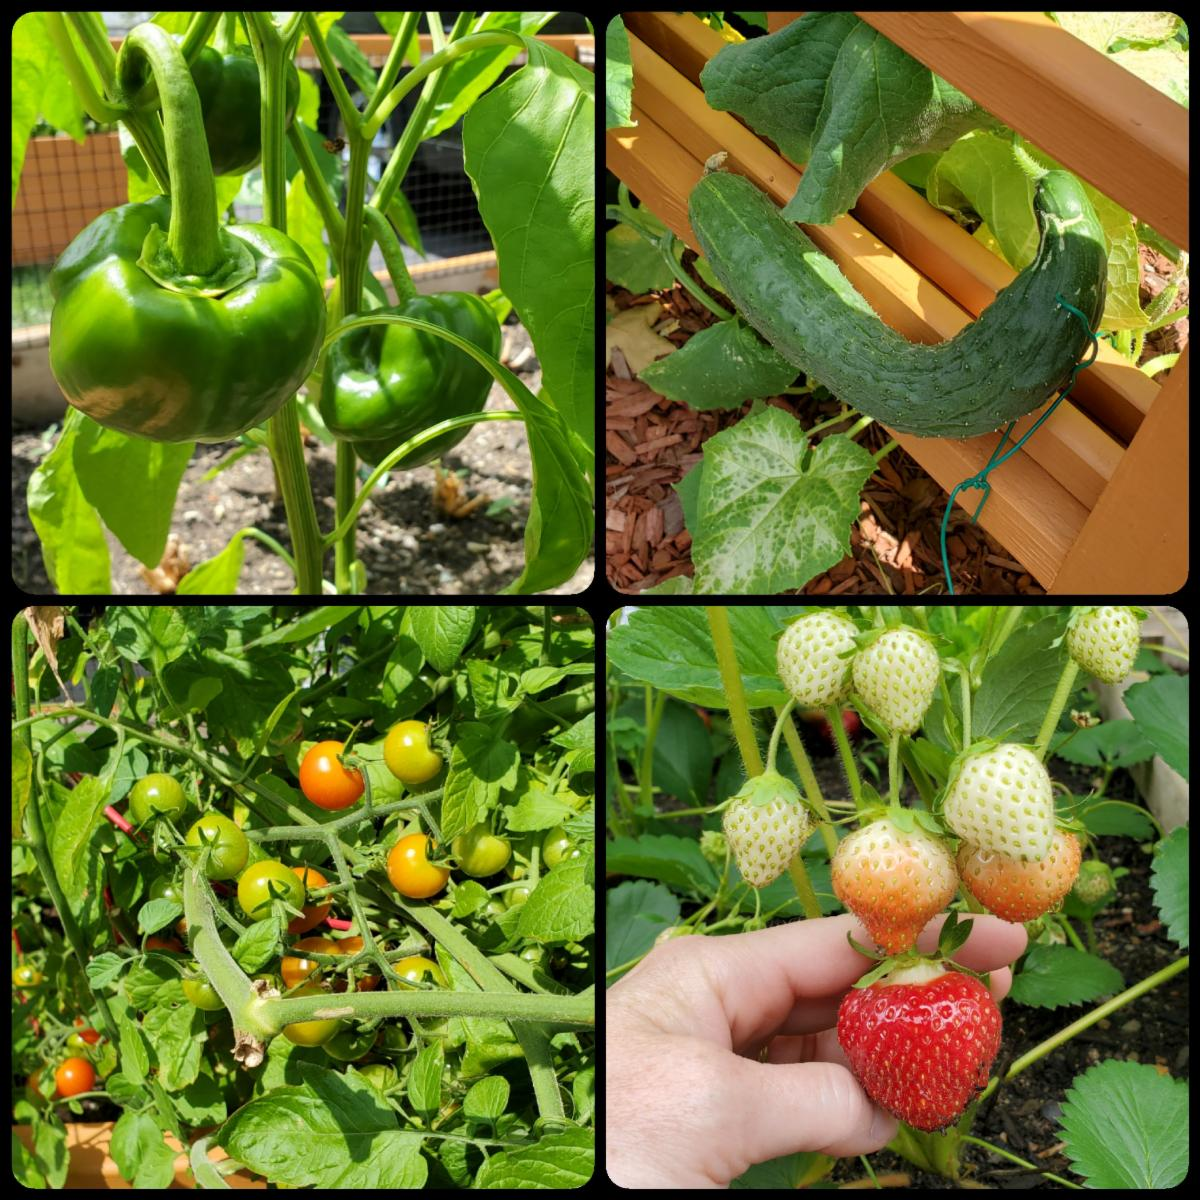 A collage of fruits and vegetables growing in a backyard garden.